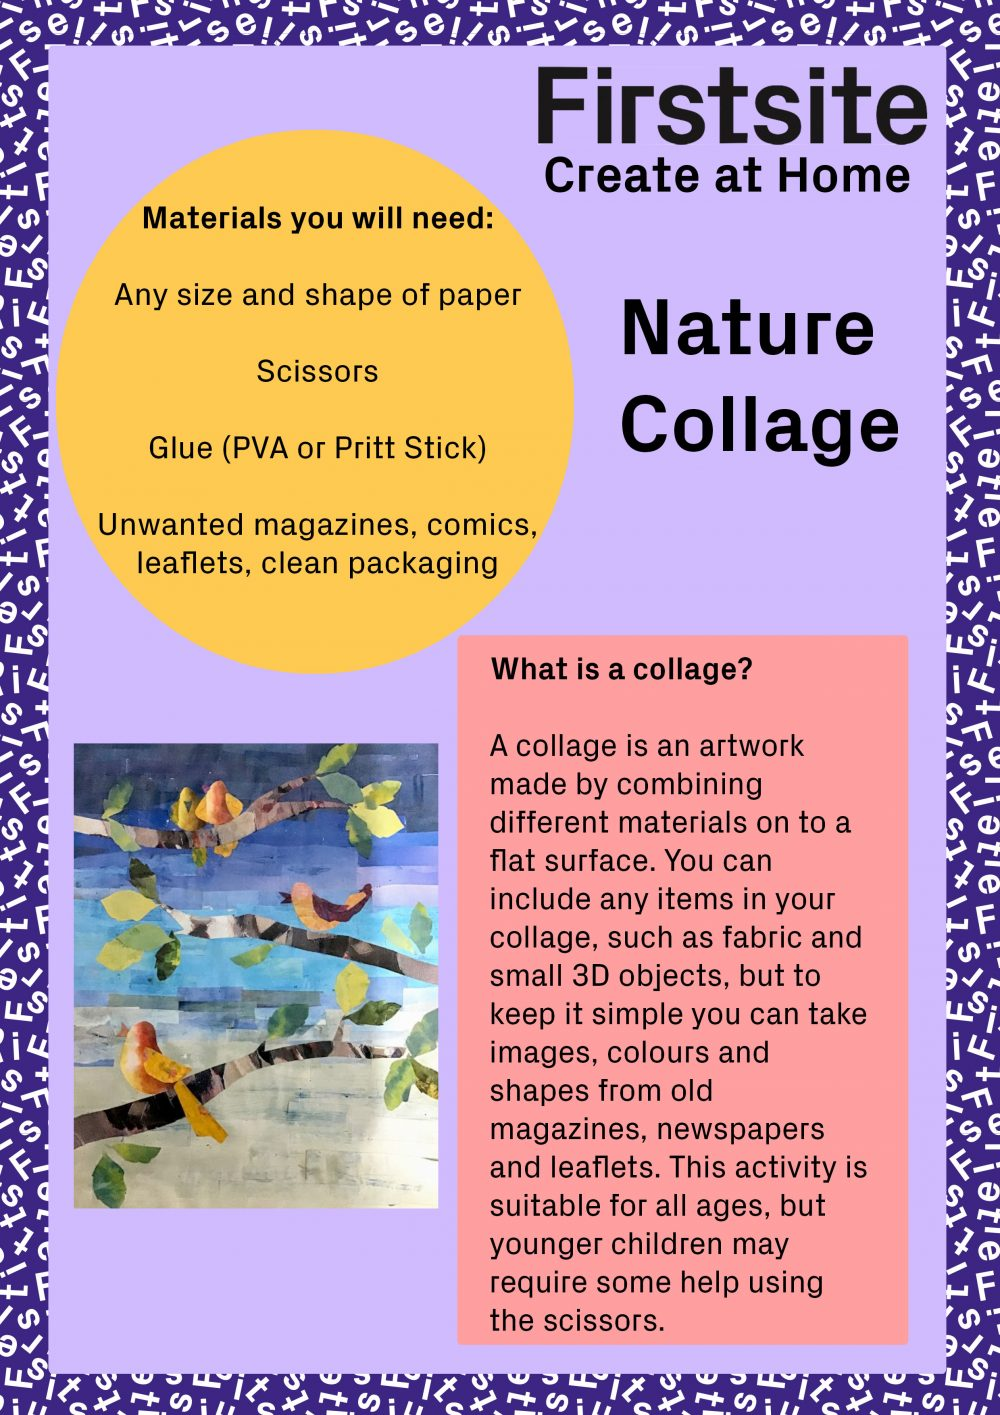 Image of instructions for how to make a nature collage